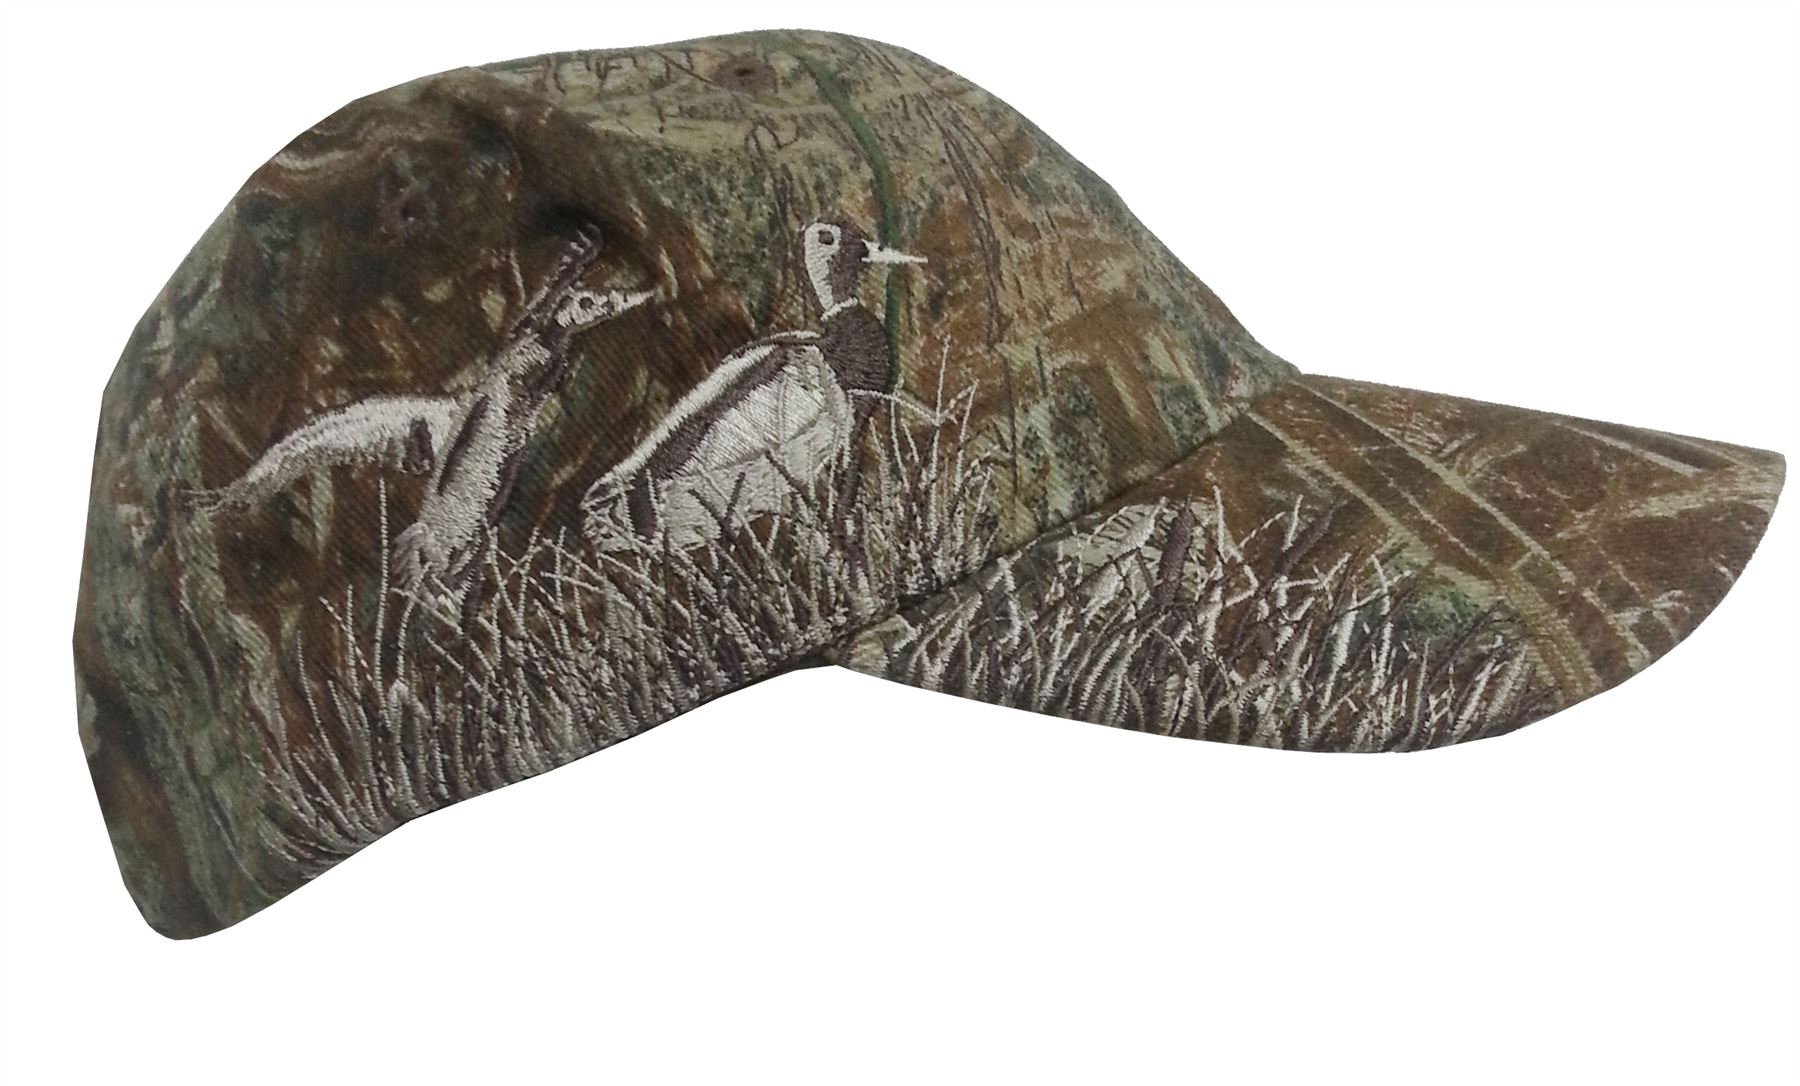 Mossy Oak Or Realtree Hunting Camo Duck Deer Stag Outdoors